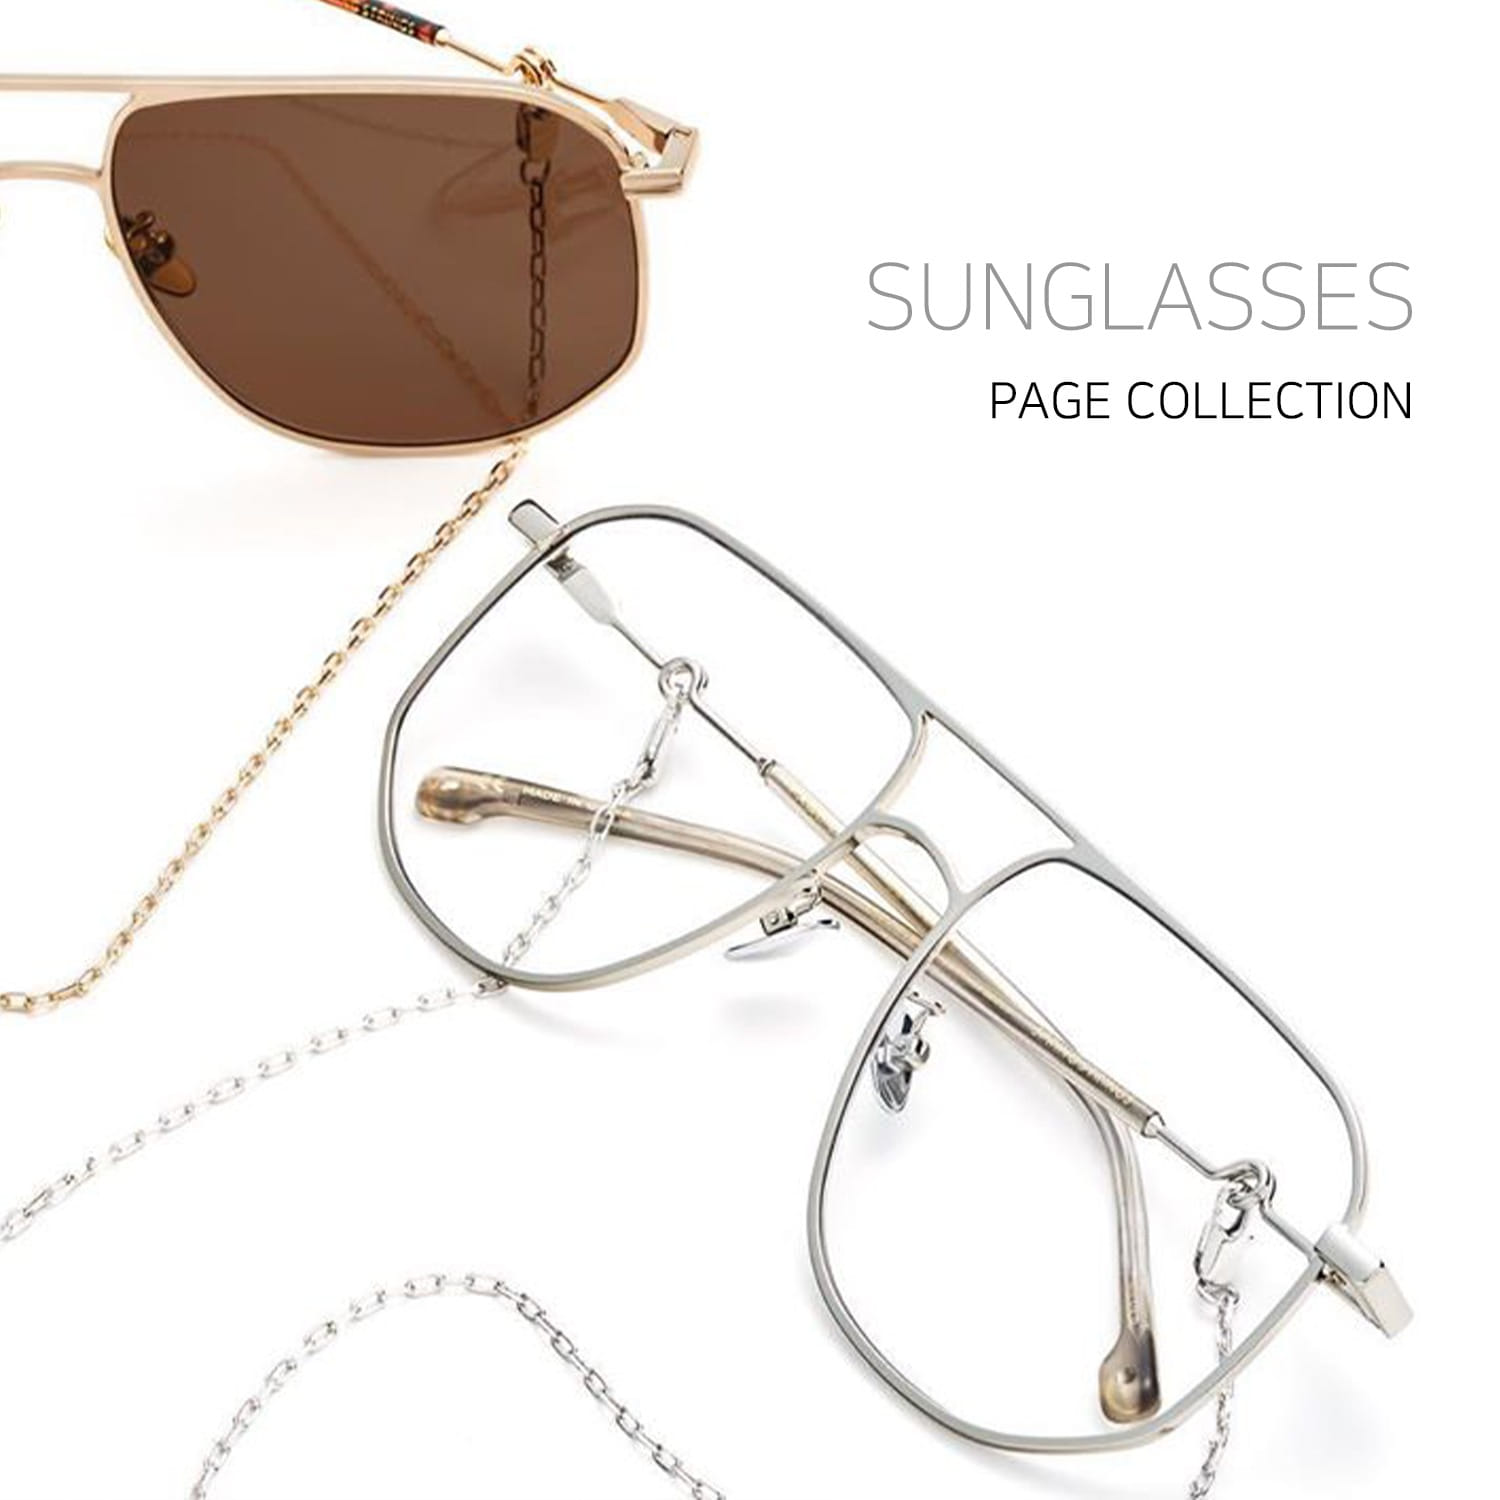 SUNGLASSES _ THE PAGE